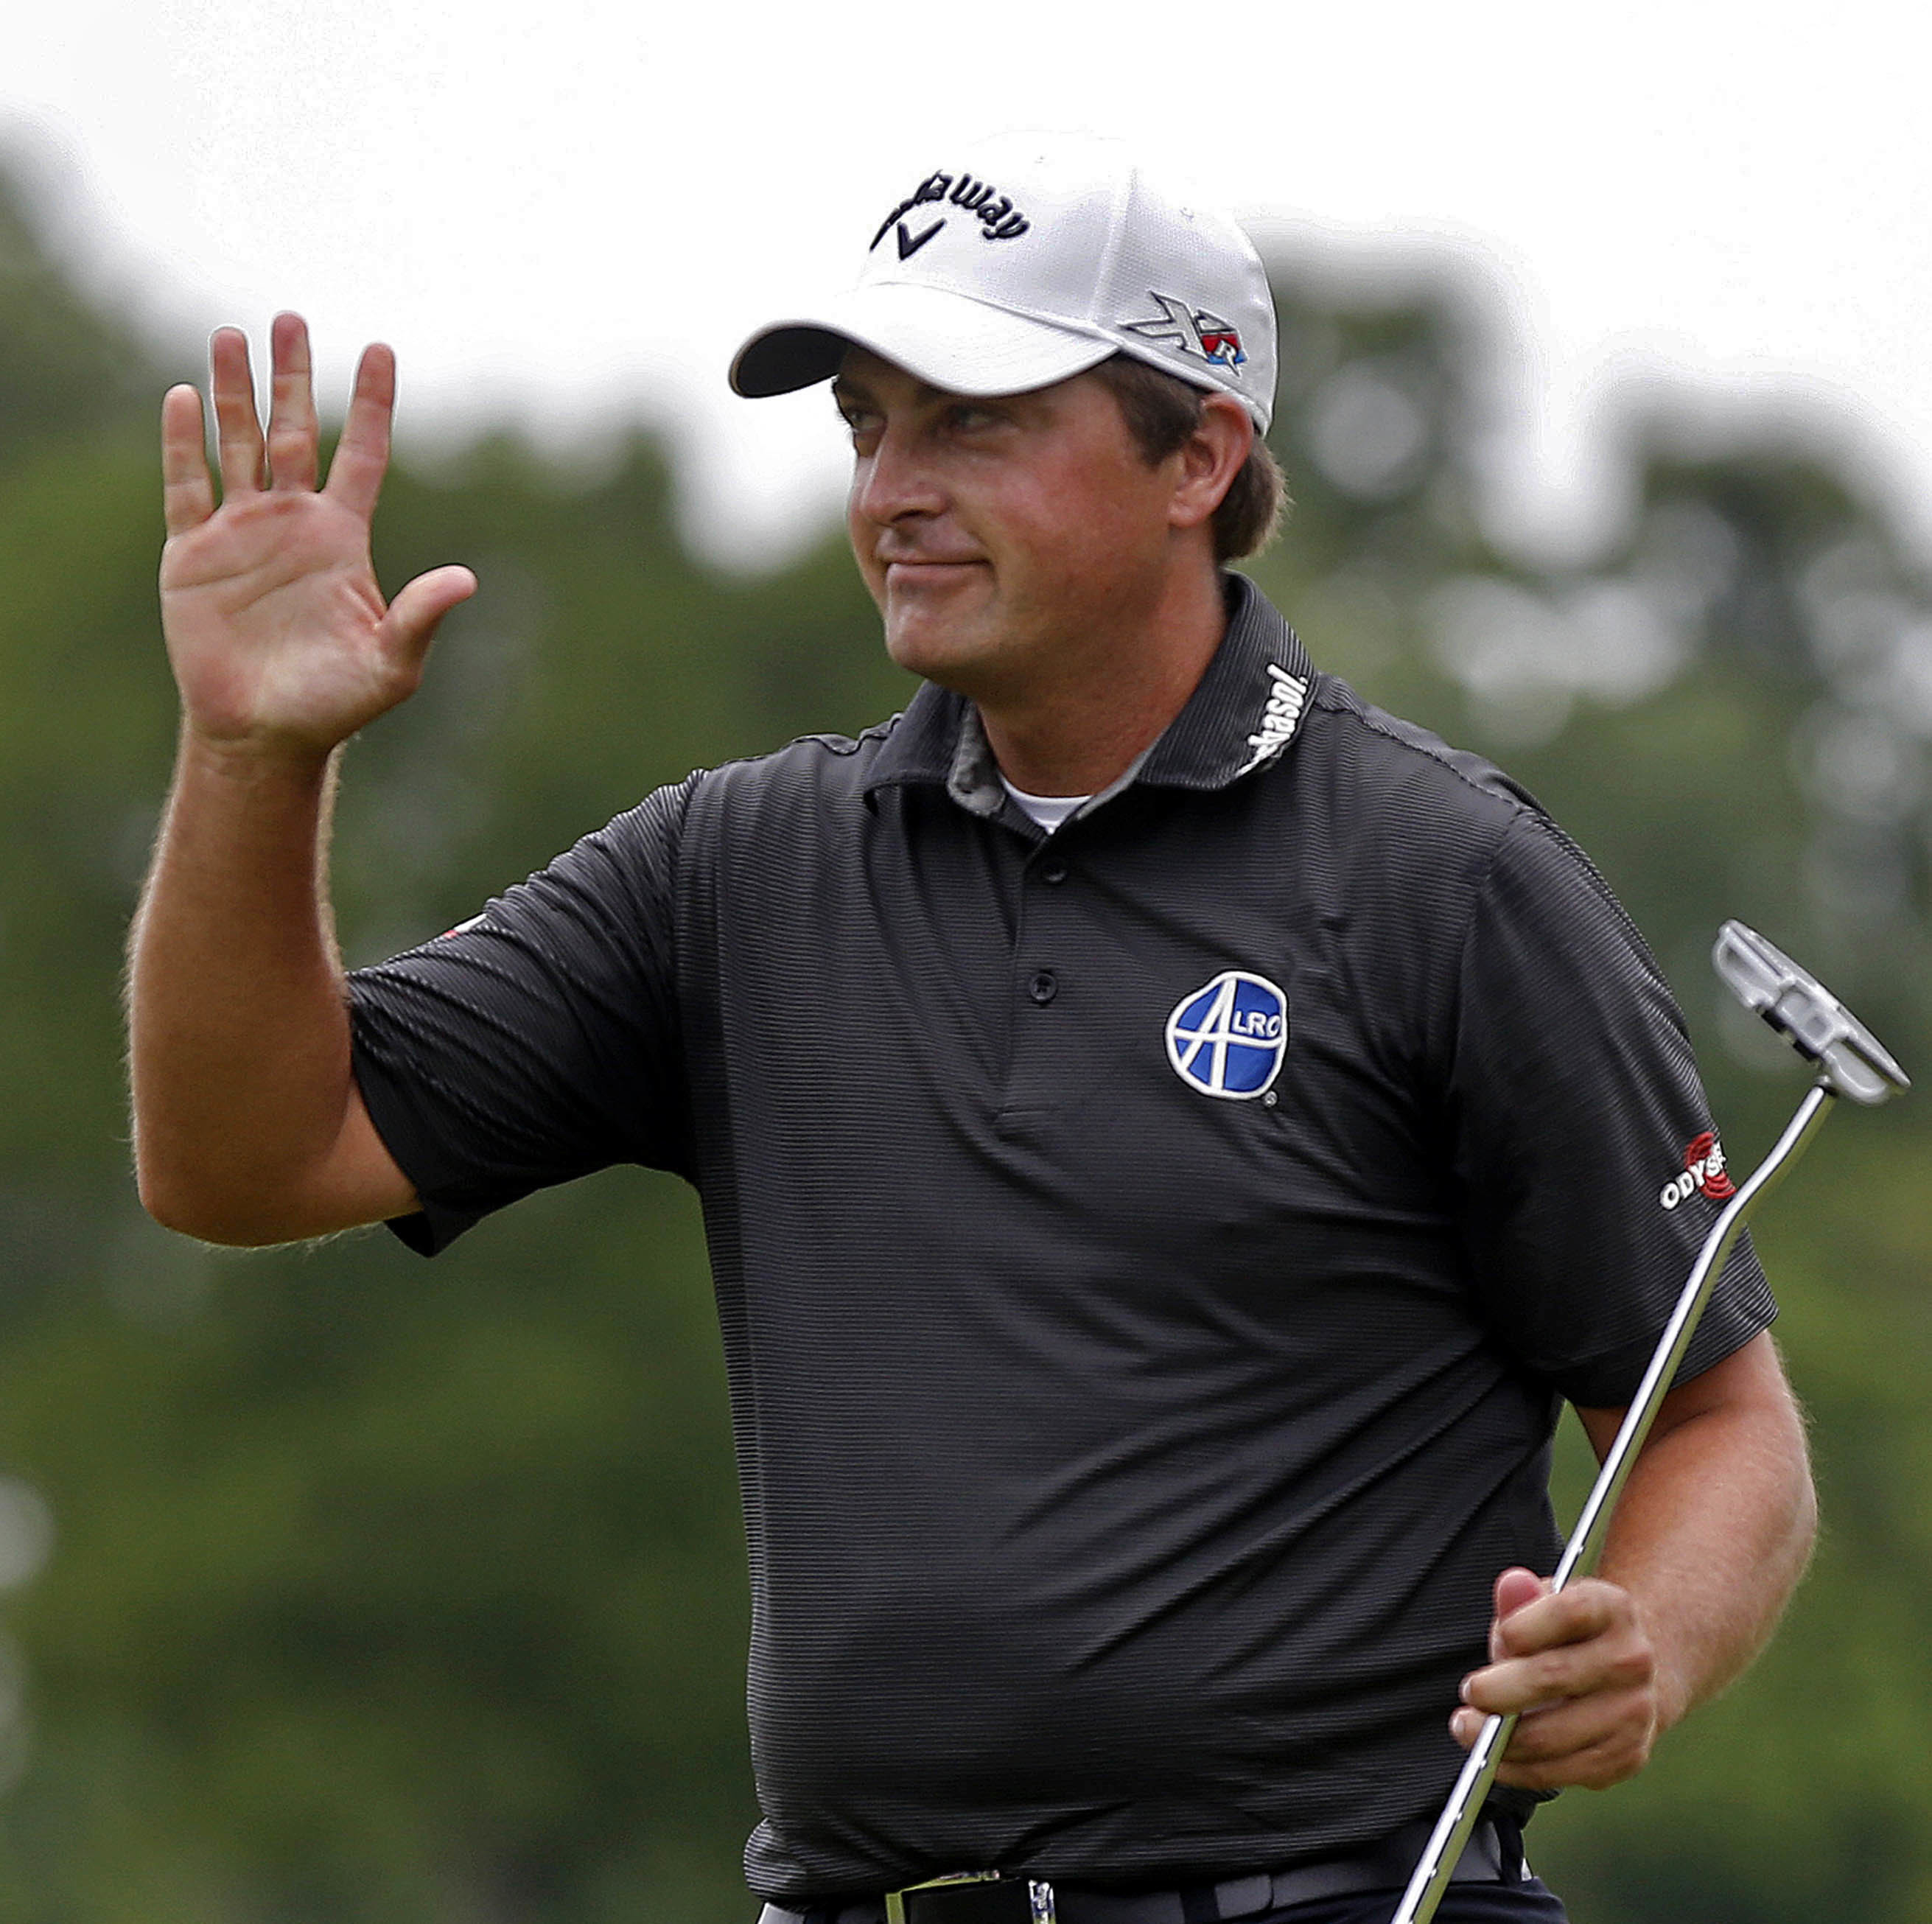 Brian Stuard waves after sinking his putt on the 18th green during a playoff round to win the rain-delayed Zurich Classic golf tournament at TPC Louisiana in Avondale, La., Monday, May 2, 2016.  (AP Photo/Gerald Herbert)